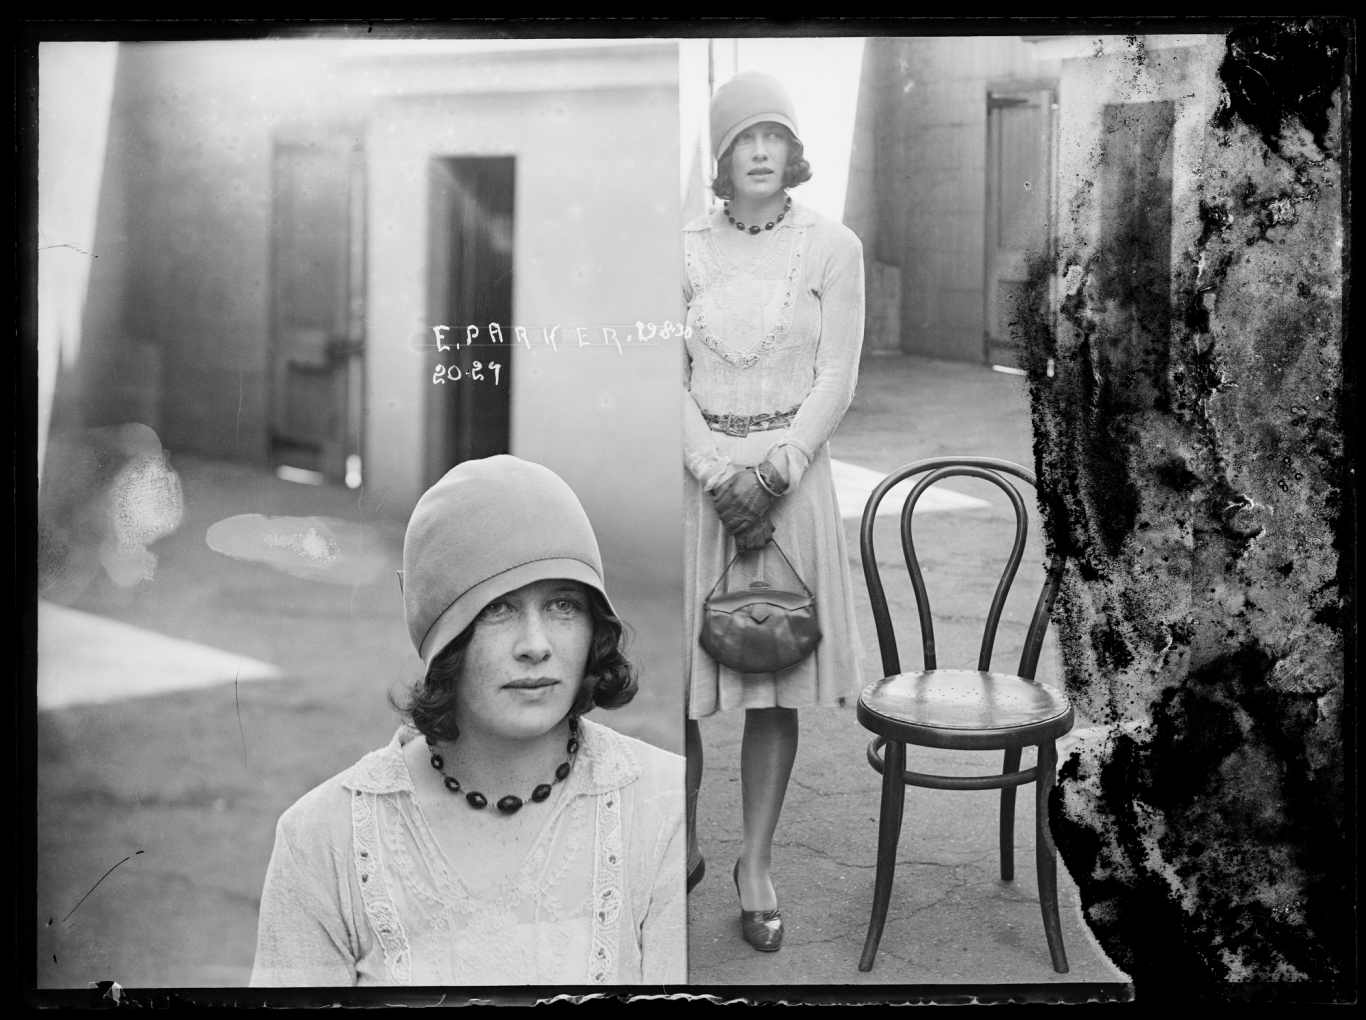 Dual mugshot in black and white; woman seated on left, standing on right. Photo quite damaged.